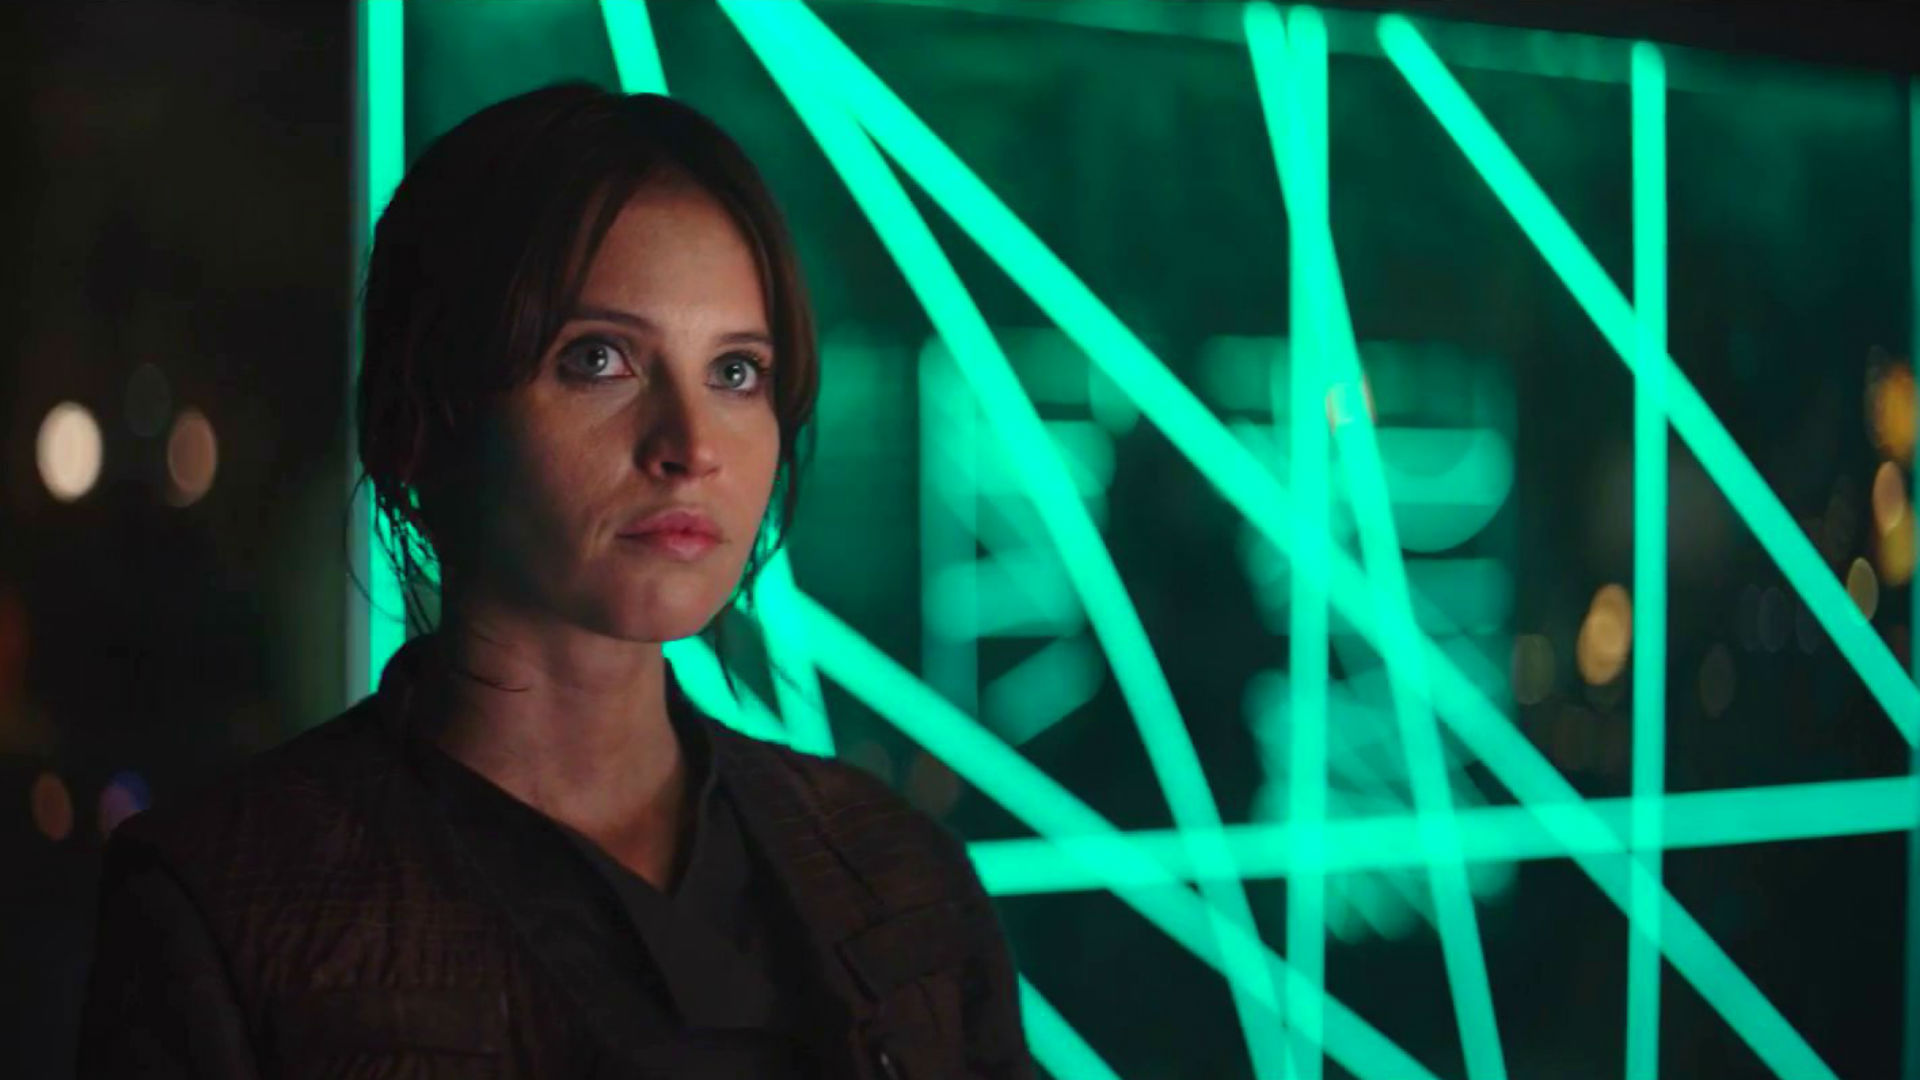 Fans Have Spotted A Last Jedi Reference In Rogue One The Mary Sue